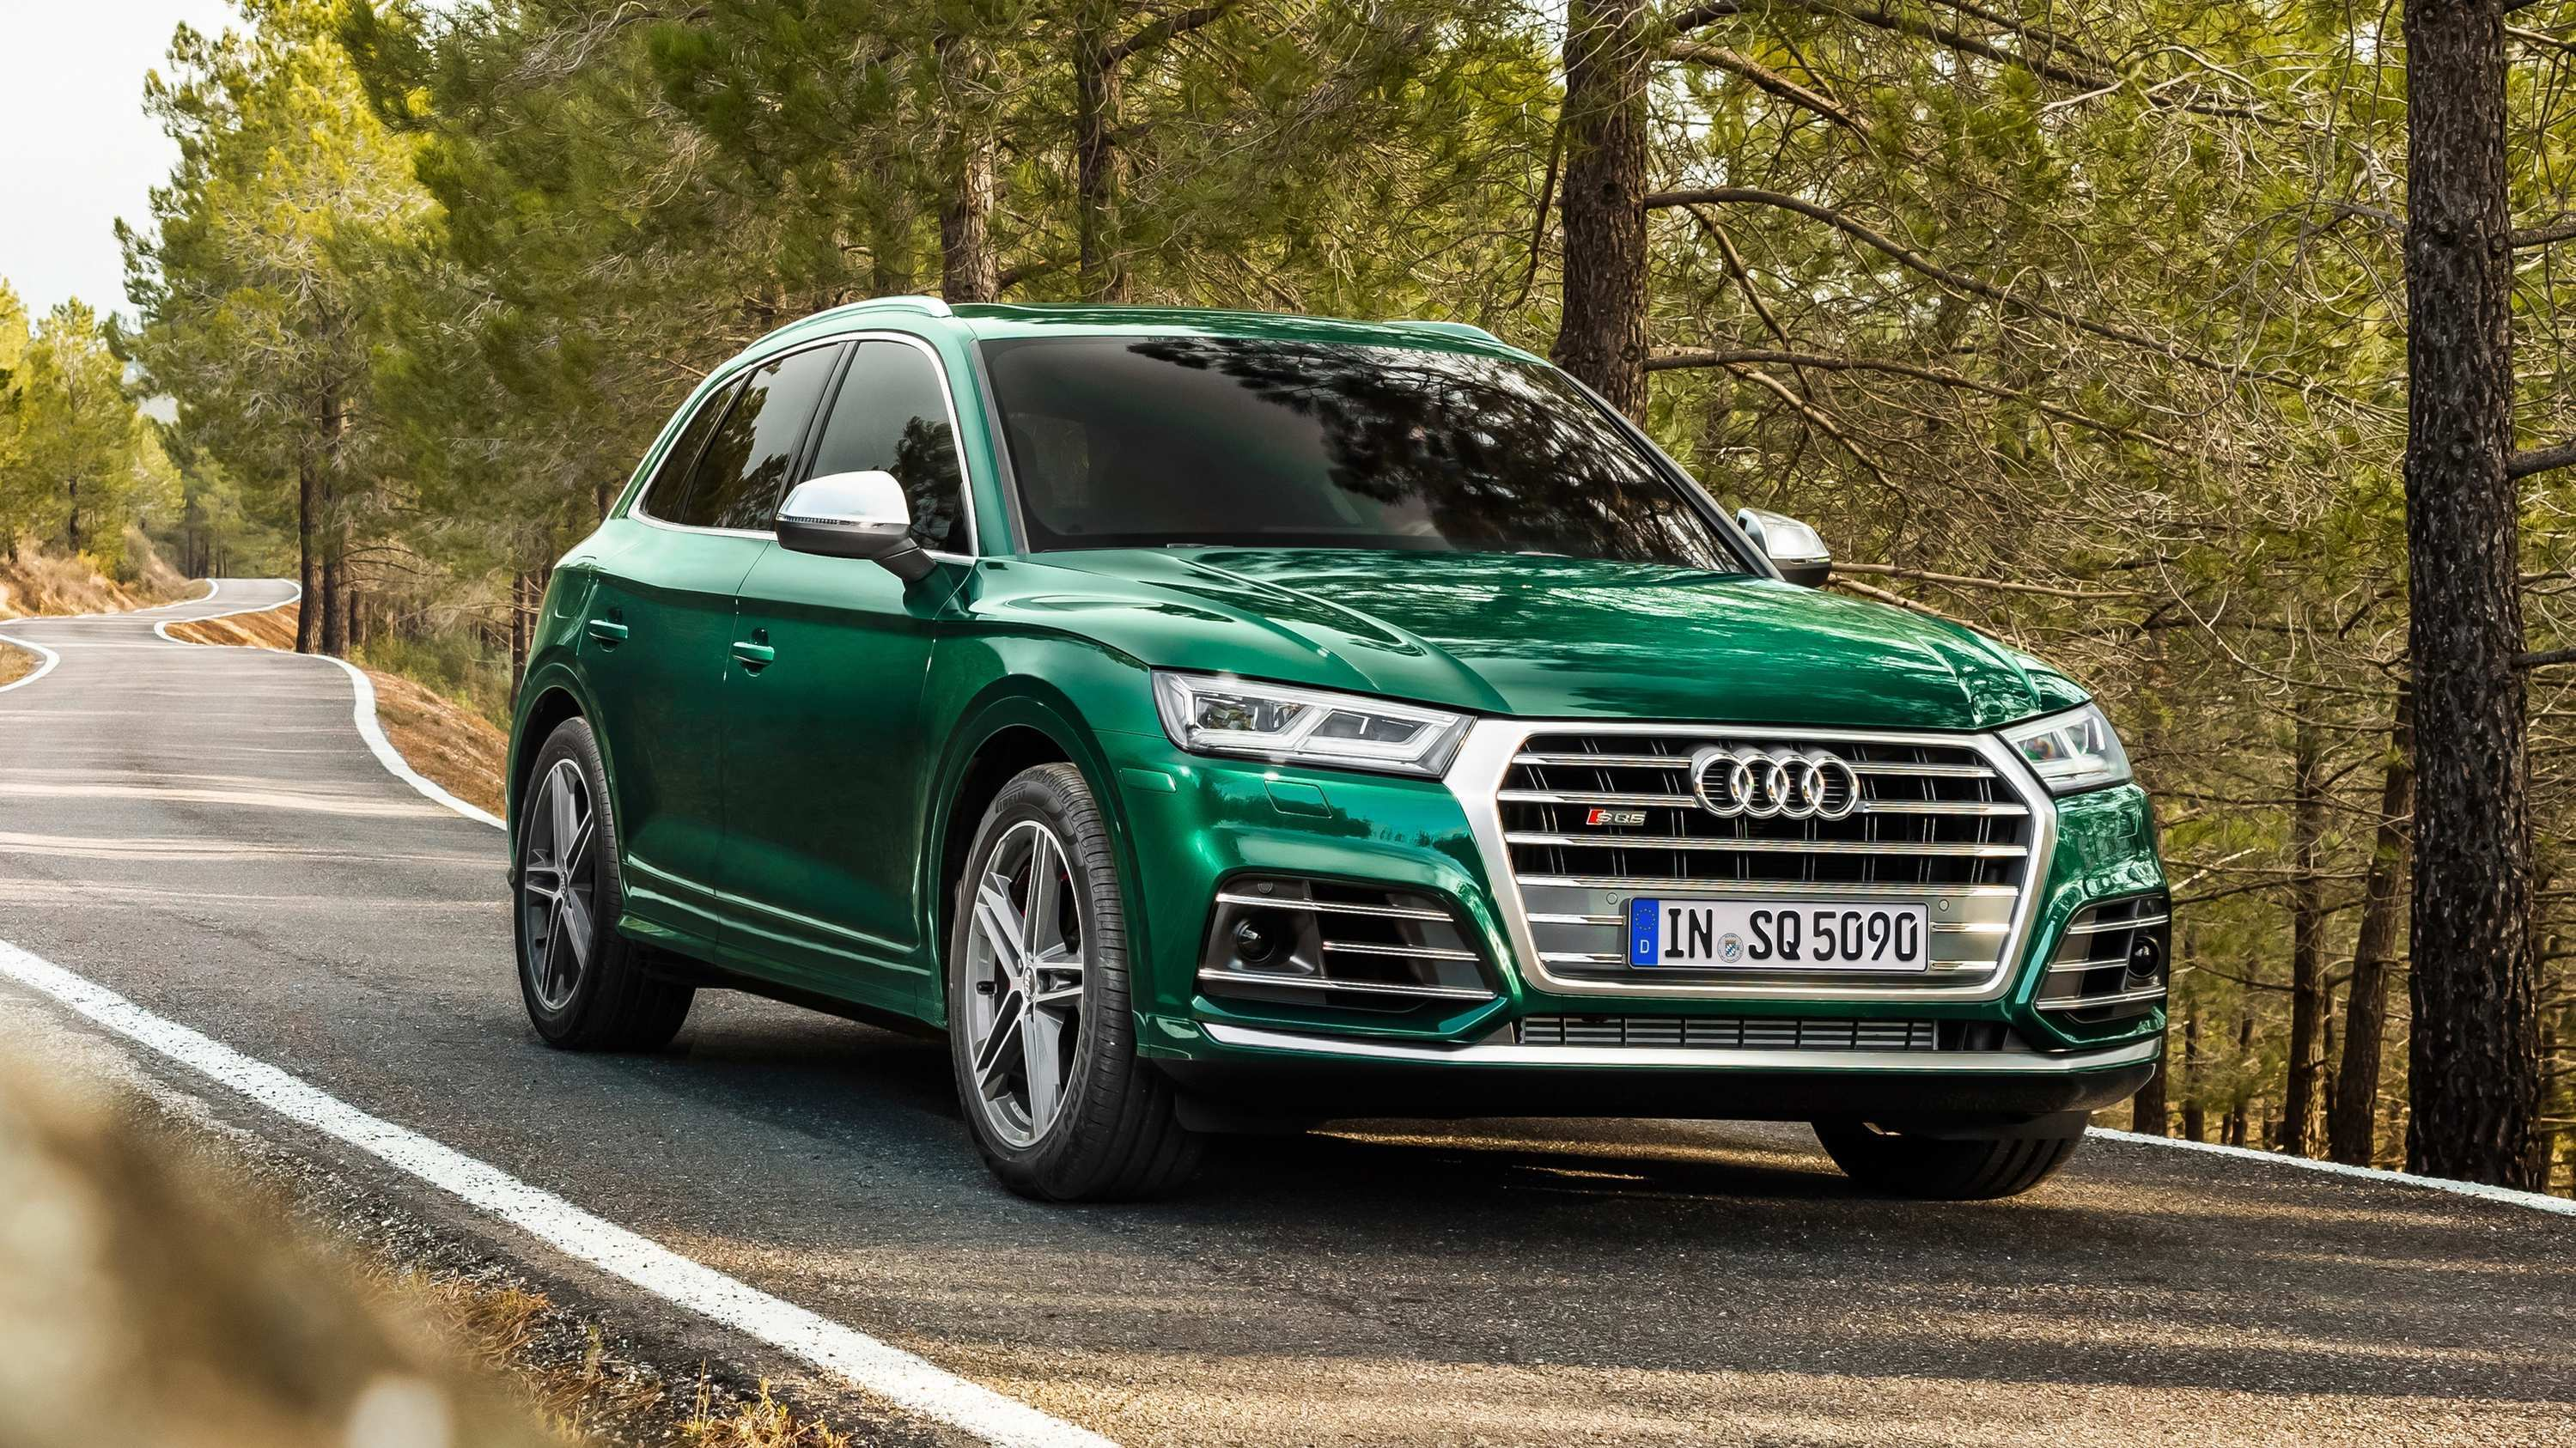 95 All New New Sq5 Audi 2019 Picture Pictures with New Sq5 Audi 2019 Picture